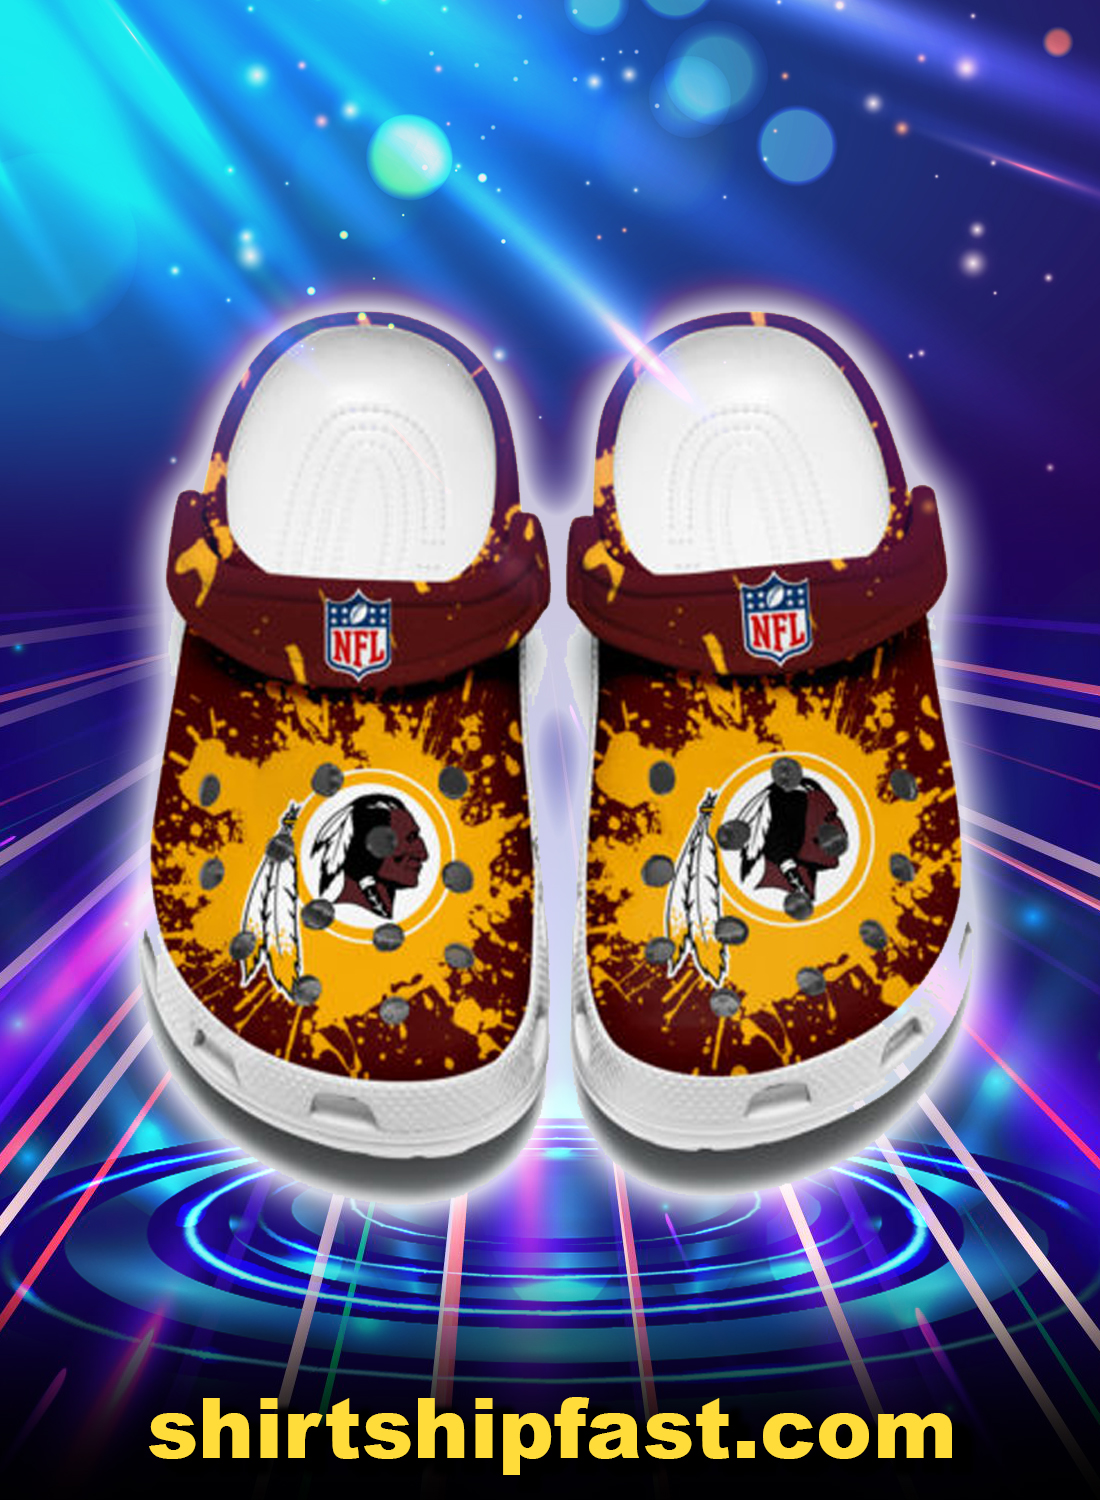 WASHINGTON REDSKINS crocband crocs shoes - Picture 1